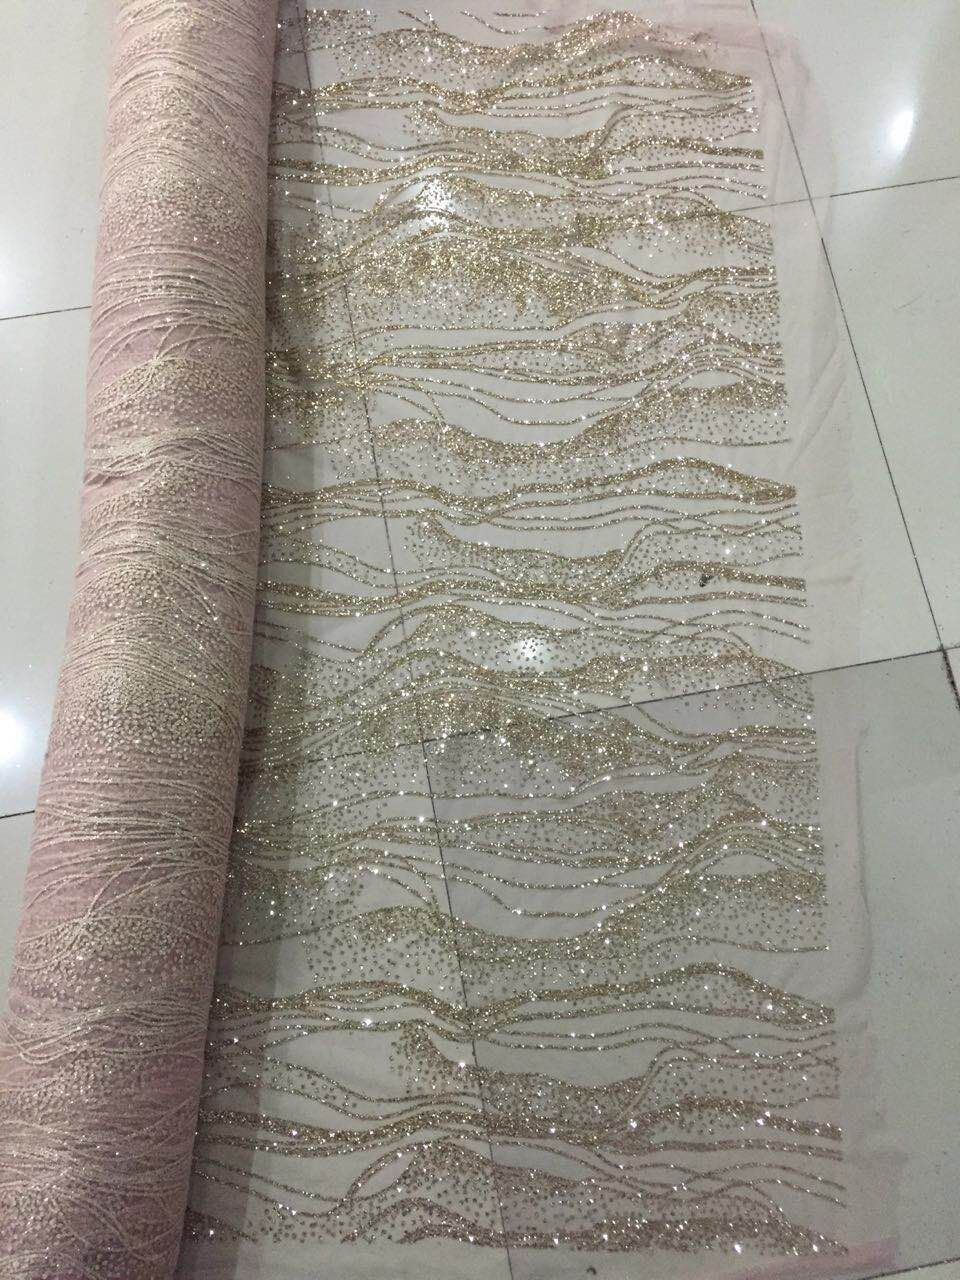 New design jianxi 31407 african glued glitter lace fabric french tulle lace fabric For party dress